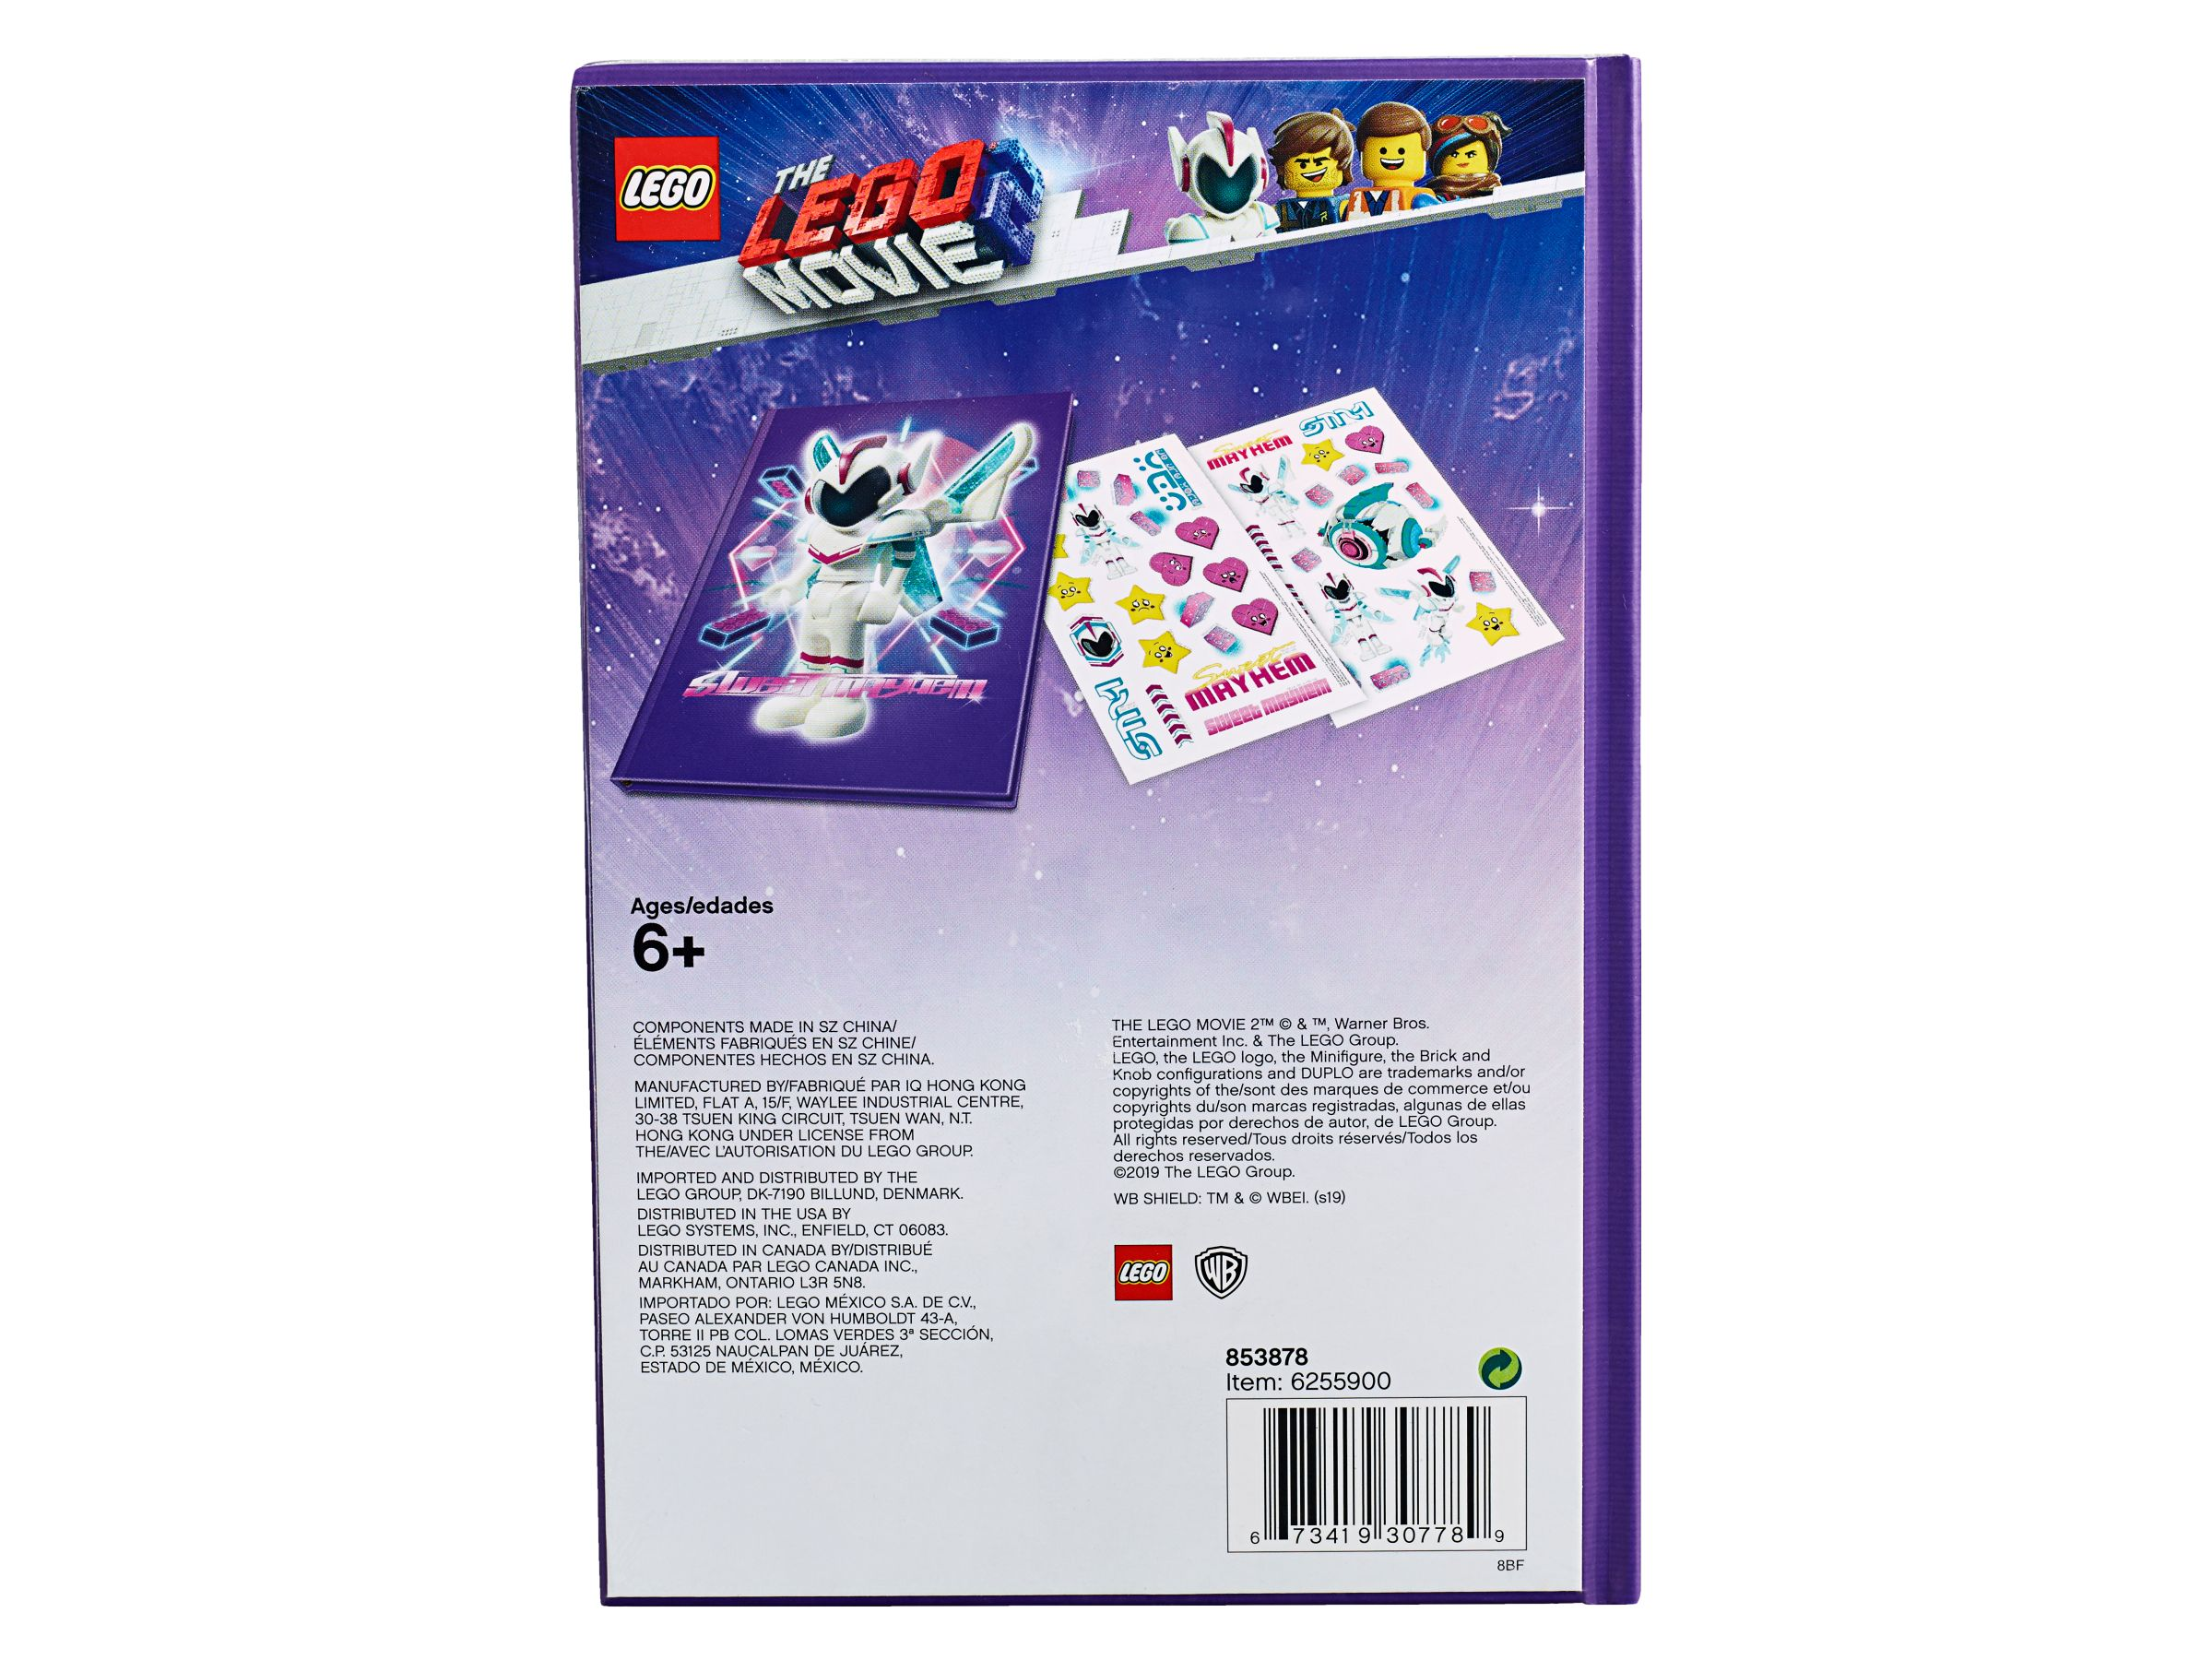 LEGO Gear 853878 THE LEGO® MOVIE 2™ Notizbuch LEGO_853878_alt2.jpg